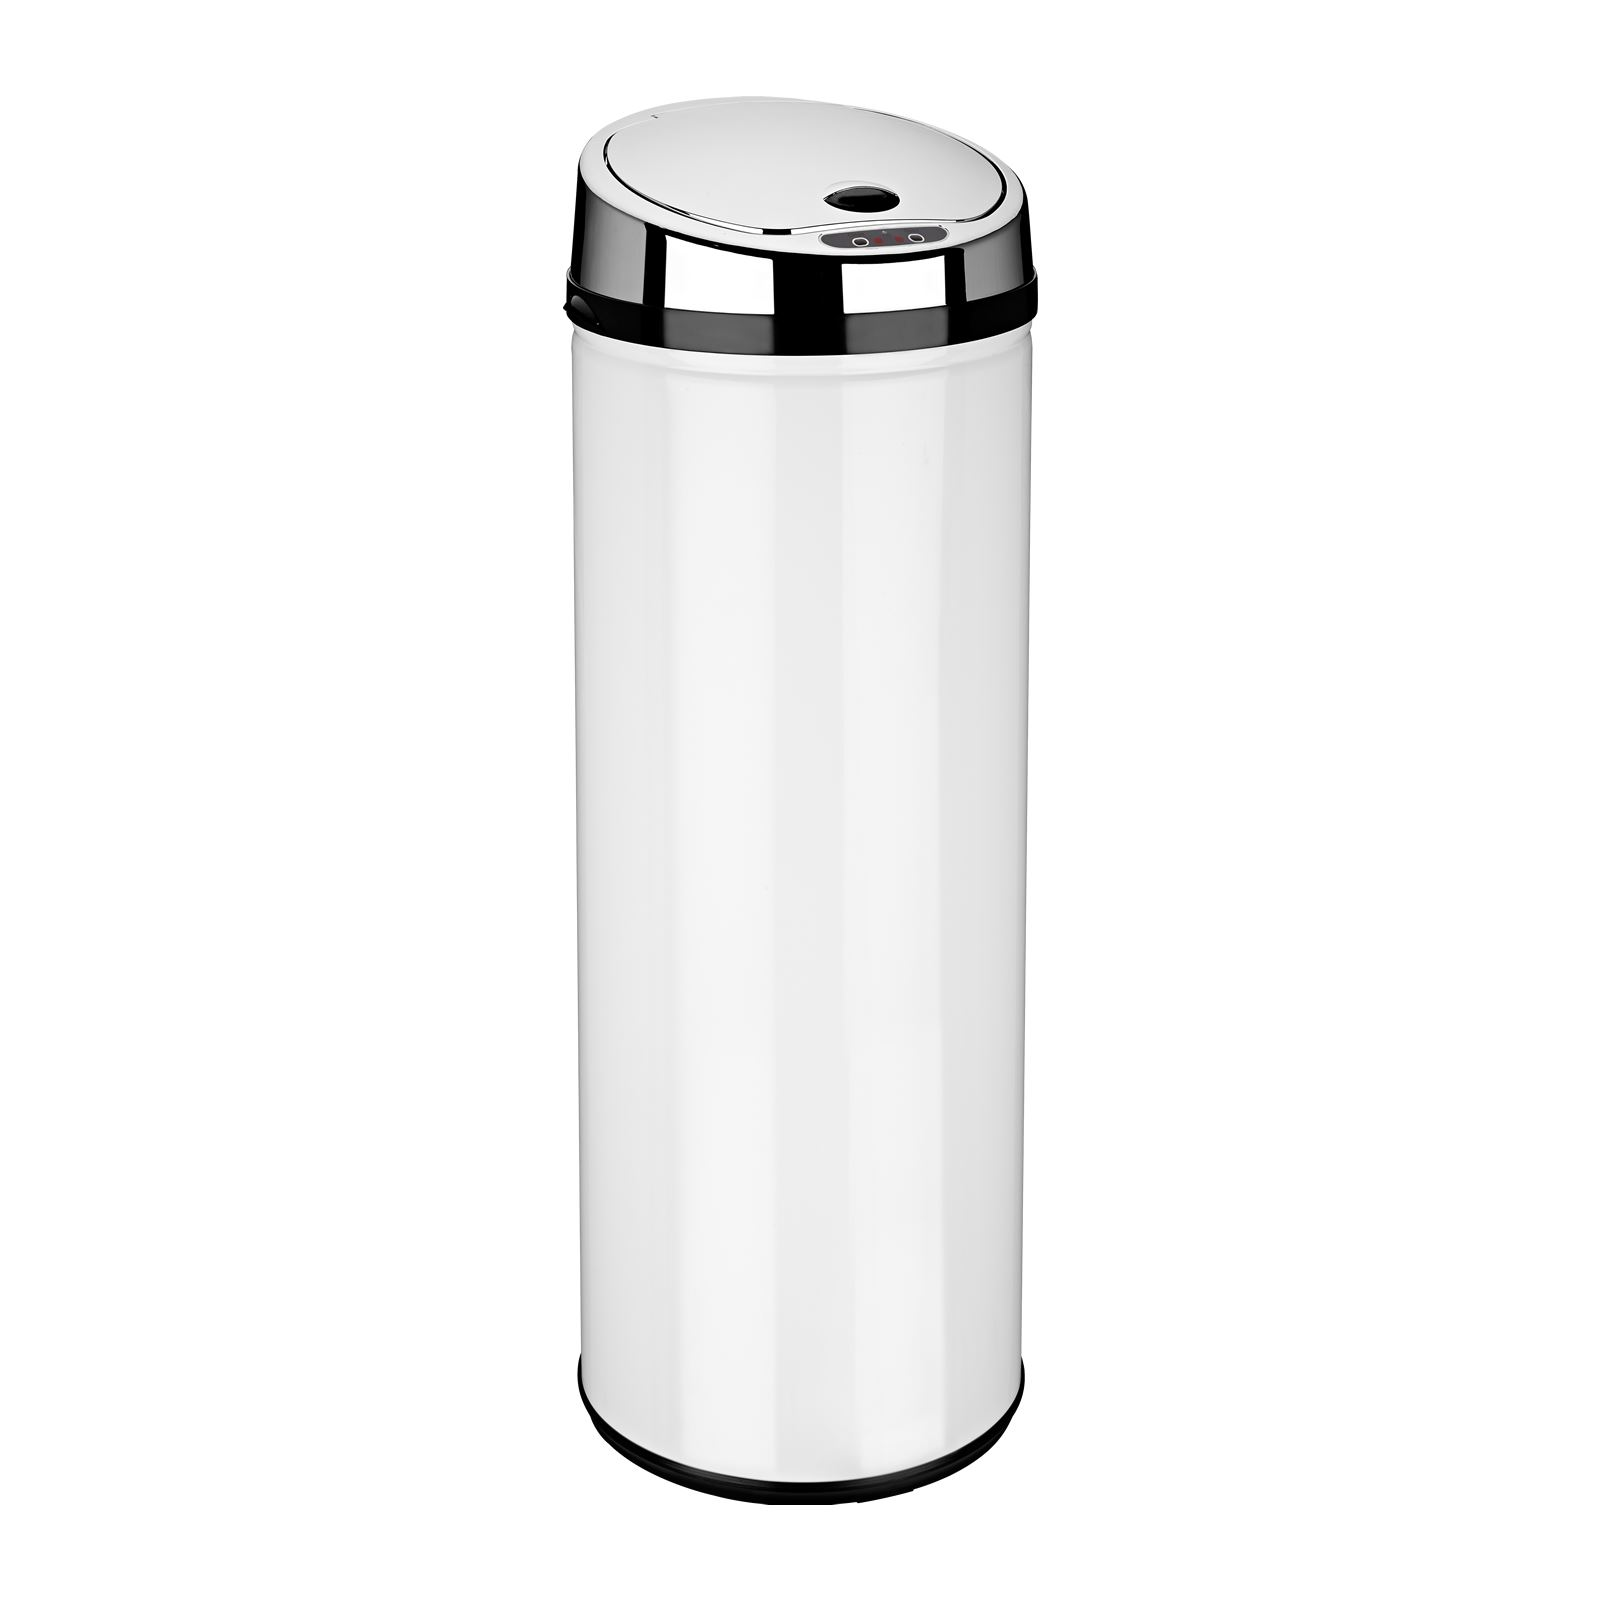 White Kitchen Bin graded automatic sensor bins 30l/42l/50l/58l/68l capacity (round